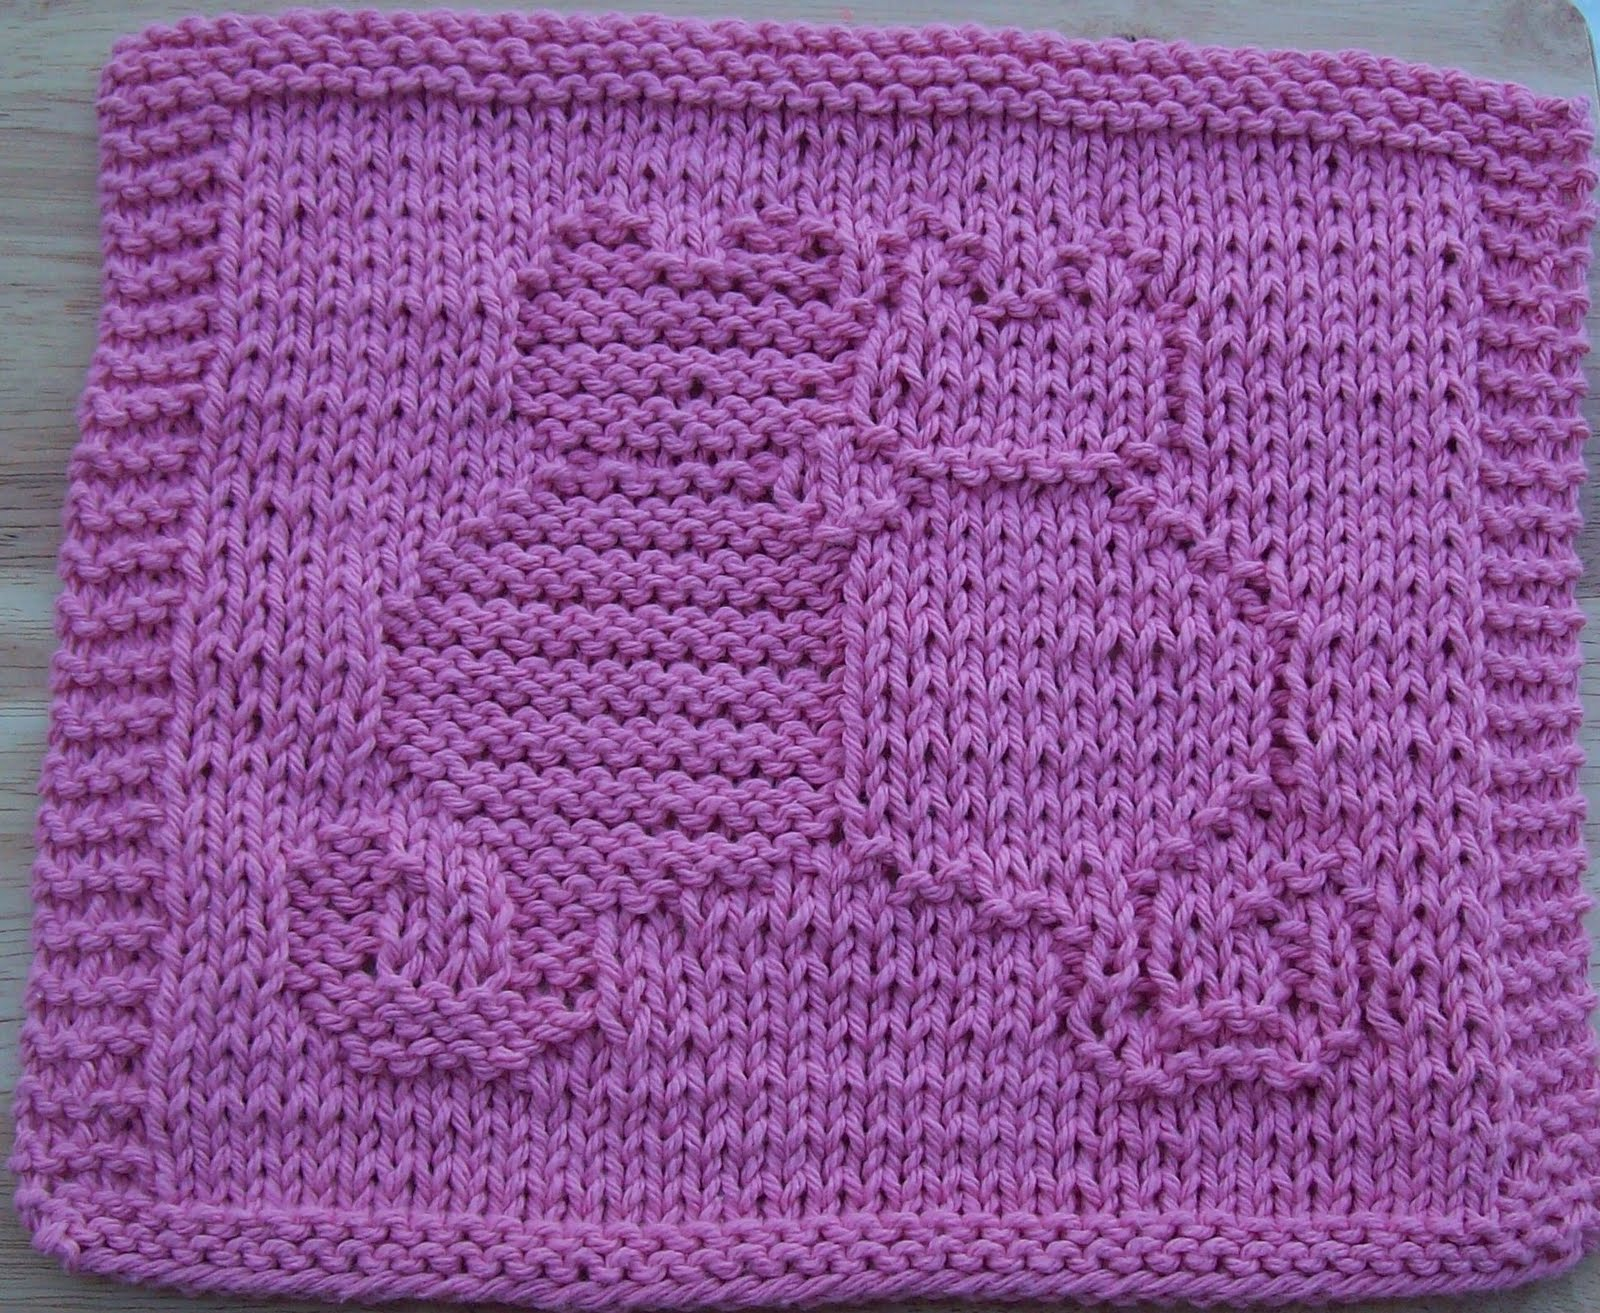 Knit Dishcloth Pattern Free : DigKnitty Designs: Snuggling Cats Knit Dishcloth Pattern